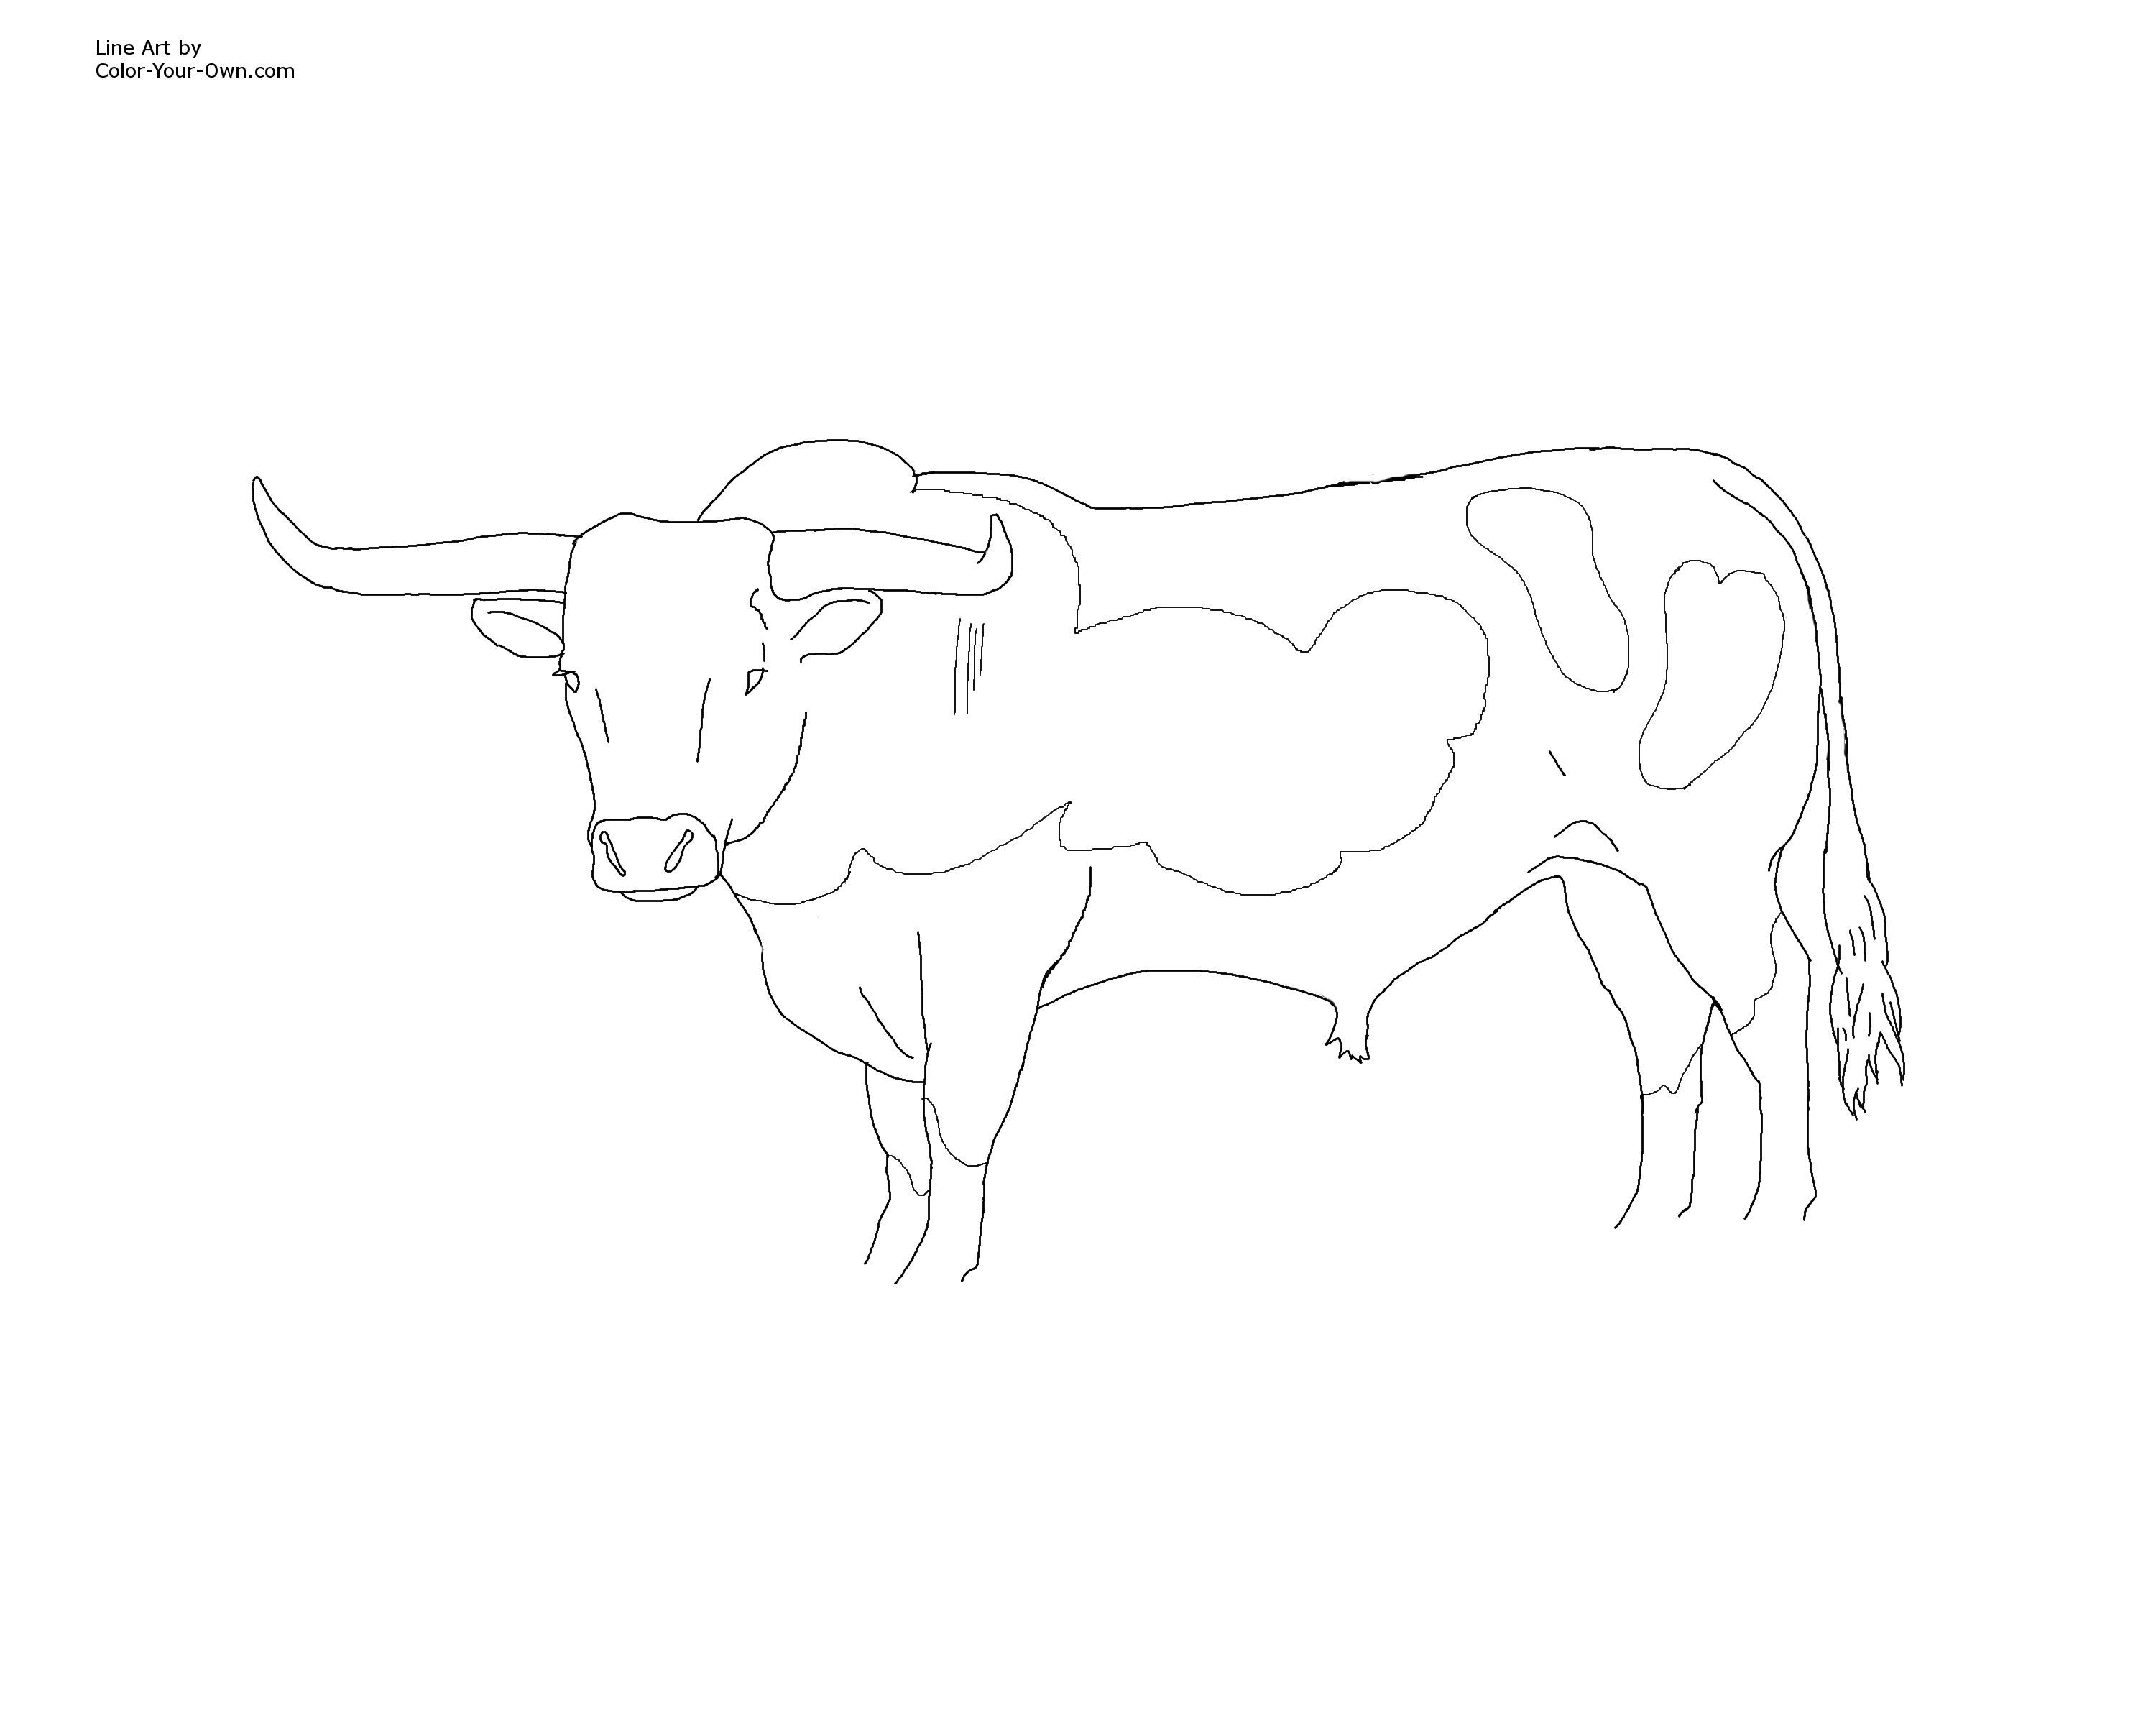 Bull coloring pages To Print | kids | Pinterest | Coloring books